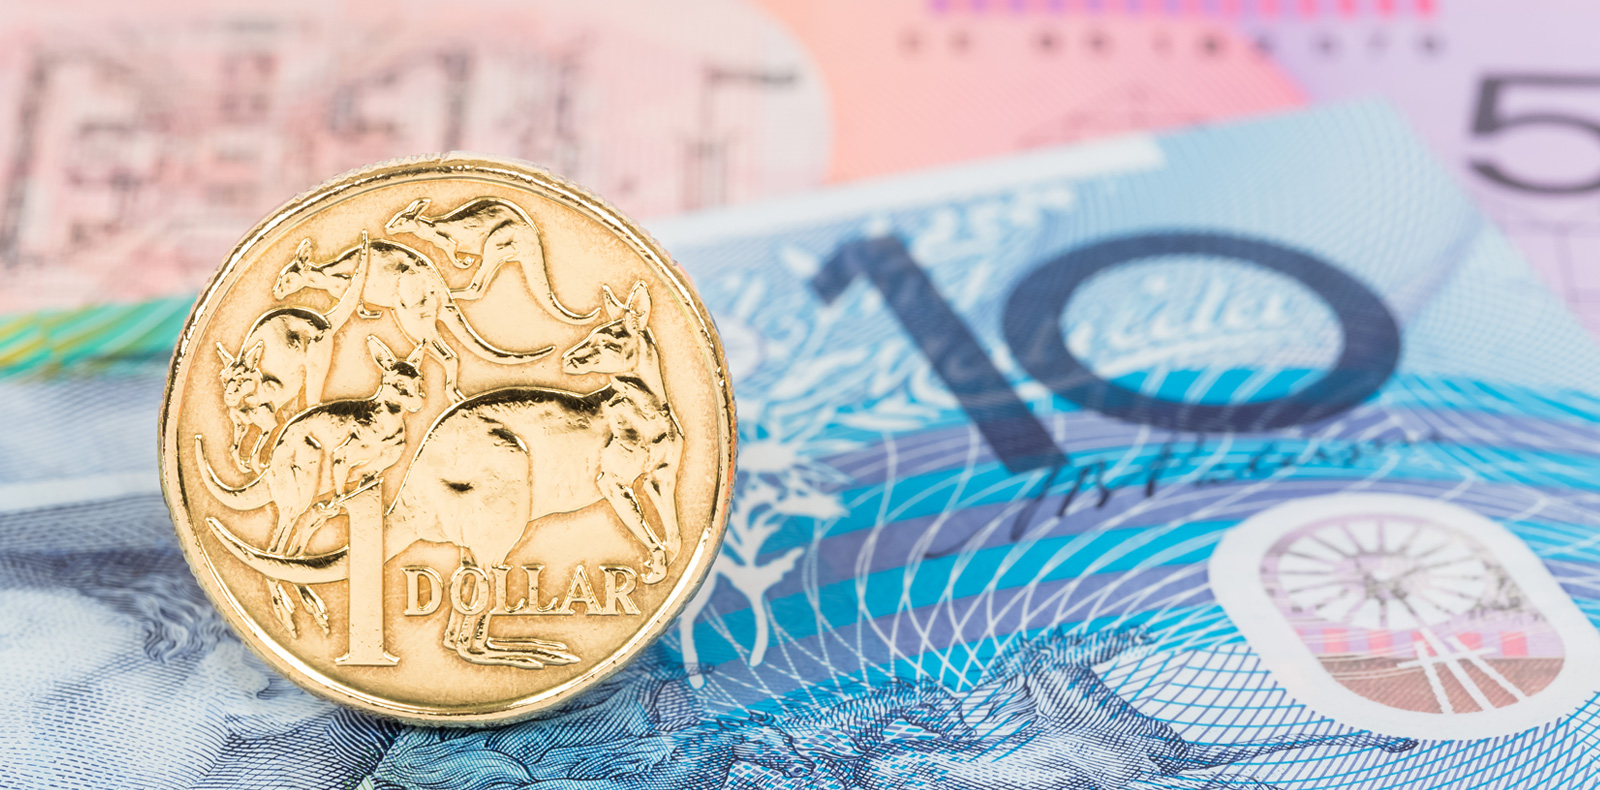 Promising employment figures helps further AUD strength